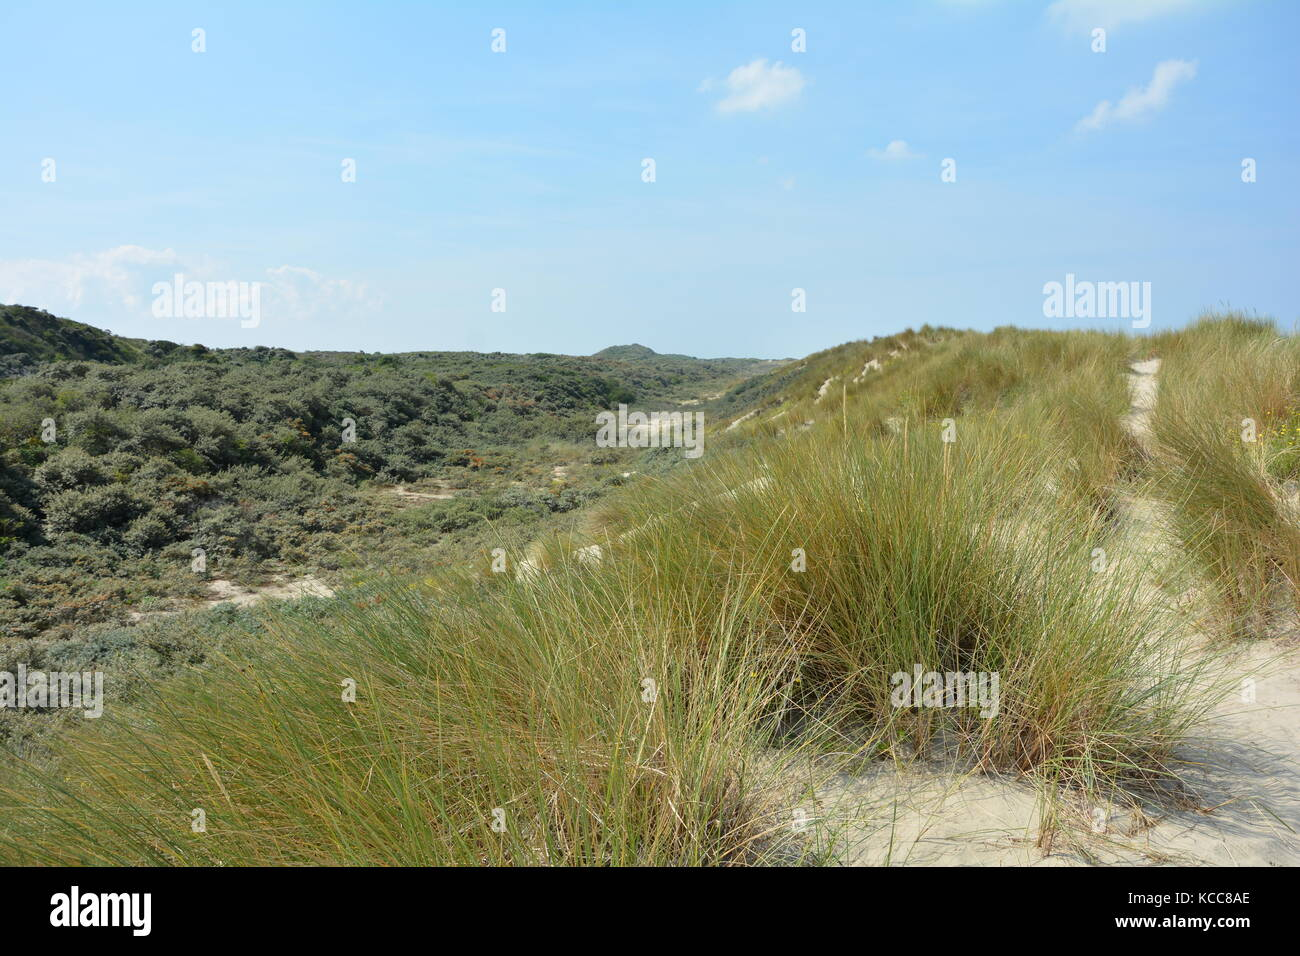 Scenery behind the sandy dunes on the North Sea coast in the Netherlands on the island Schouwen-Duiveland Stock Photo